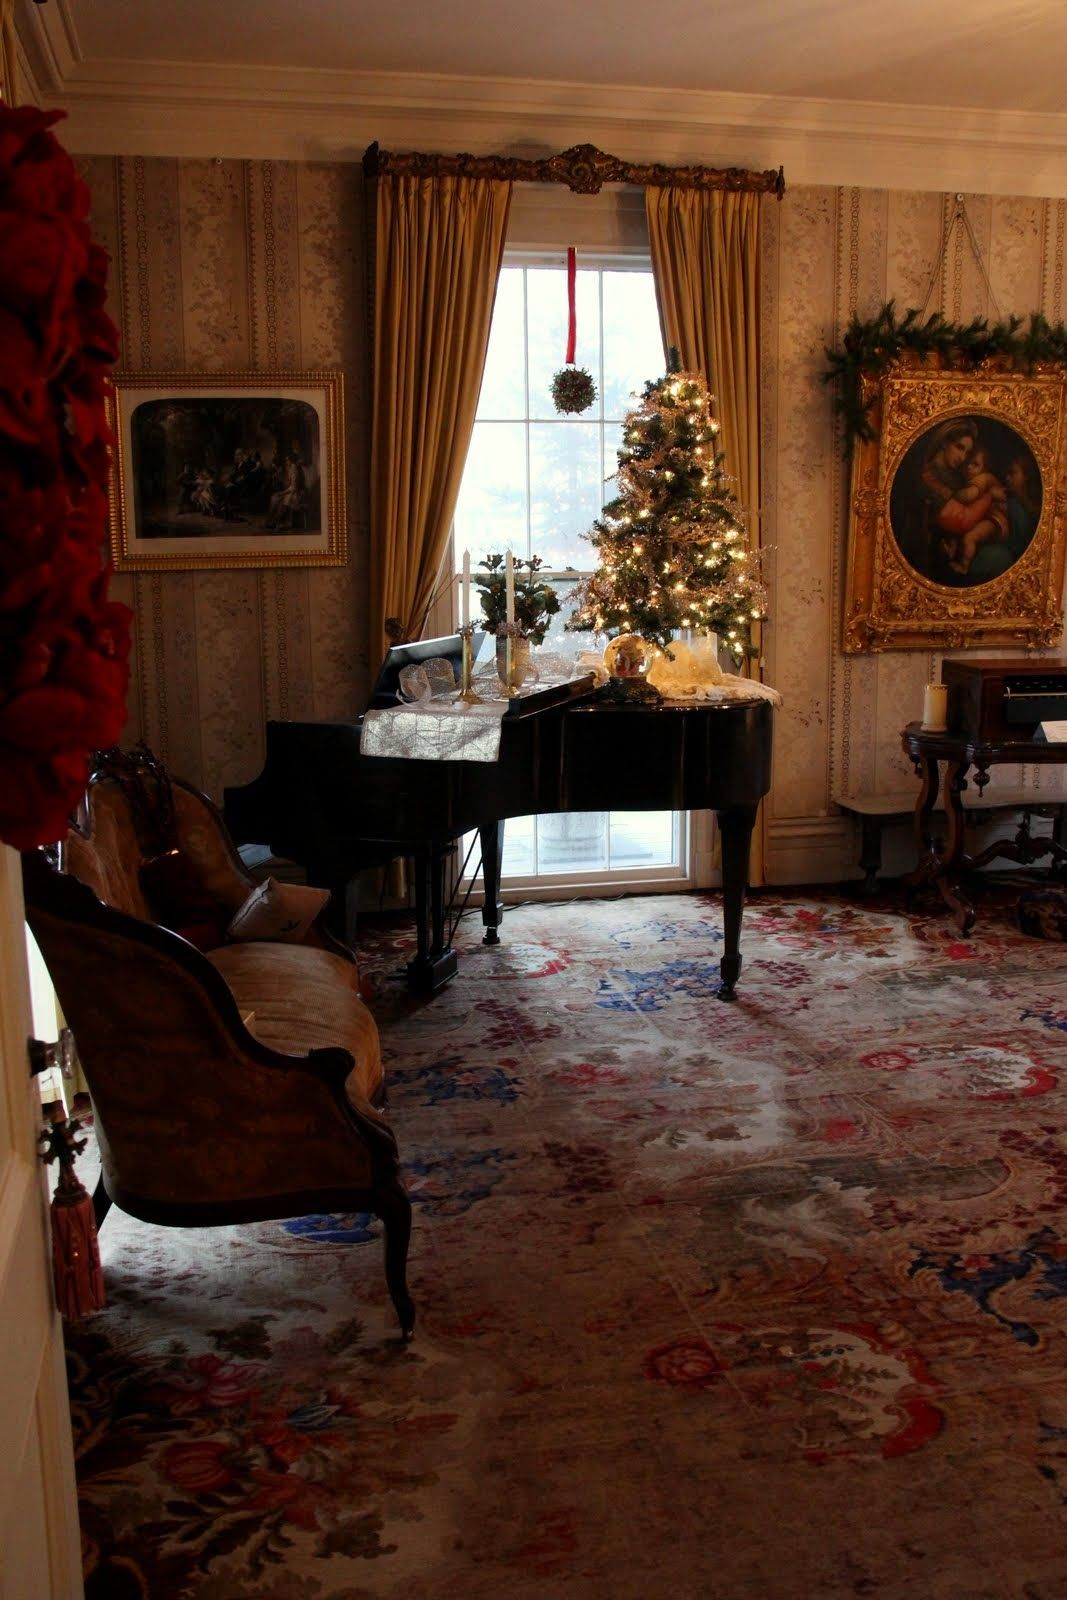 Aiken House & Gardens: The White Columns Historic Home